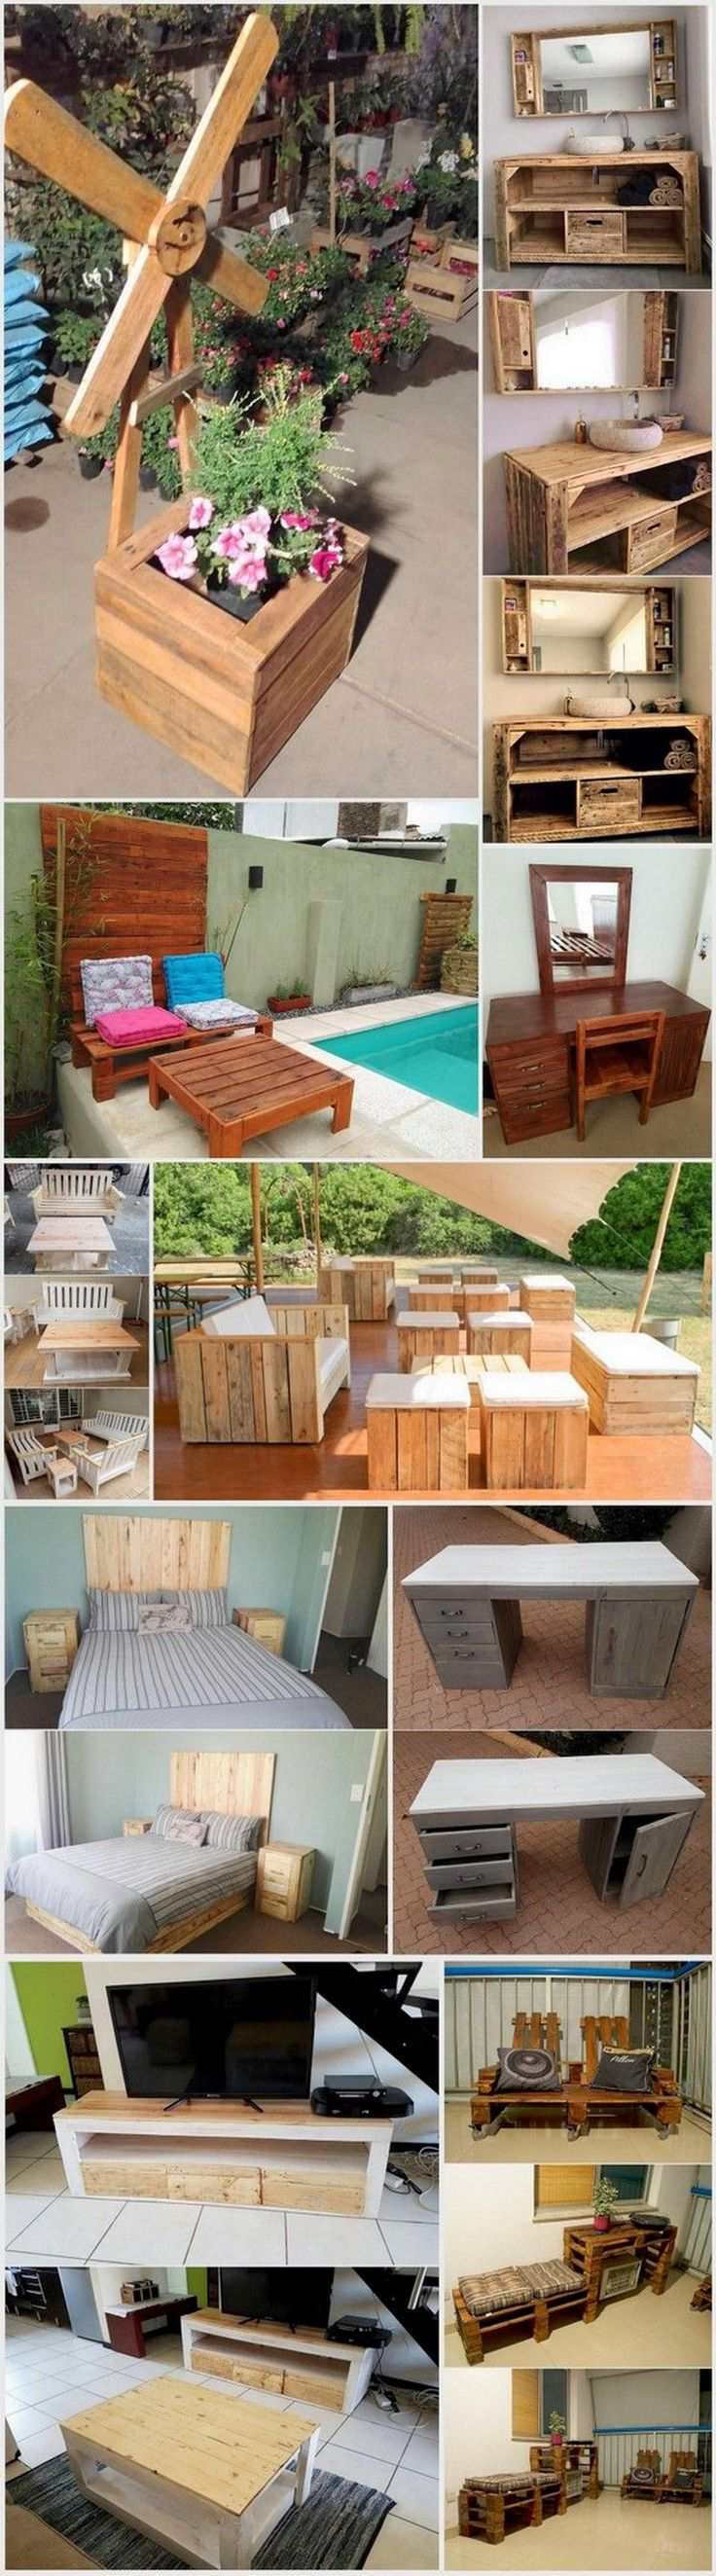 Wooden pallet craft projects - Excellent Ideas With Used Wood Pallets